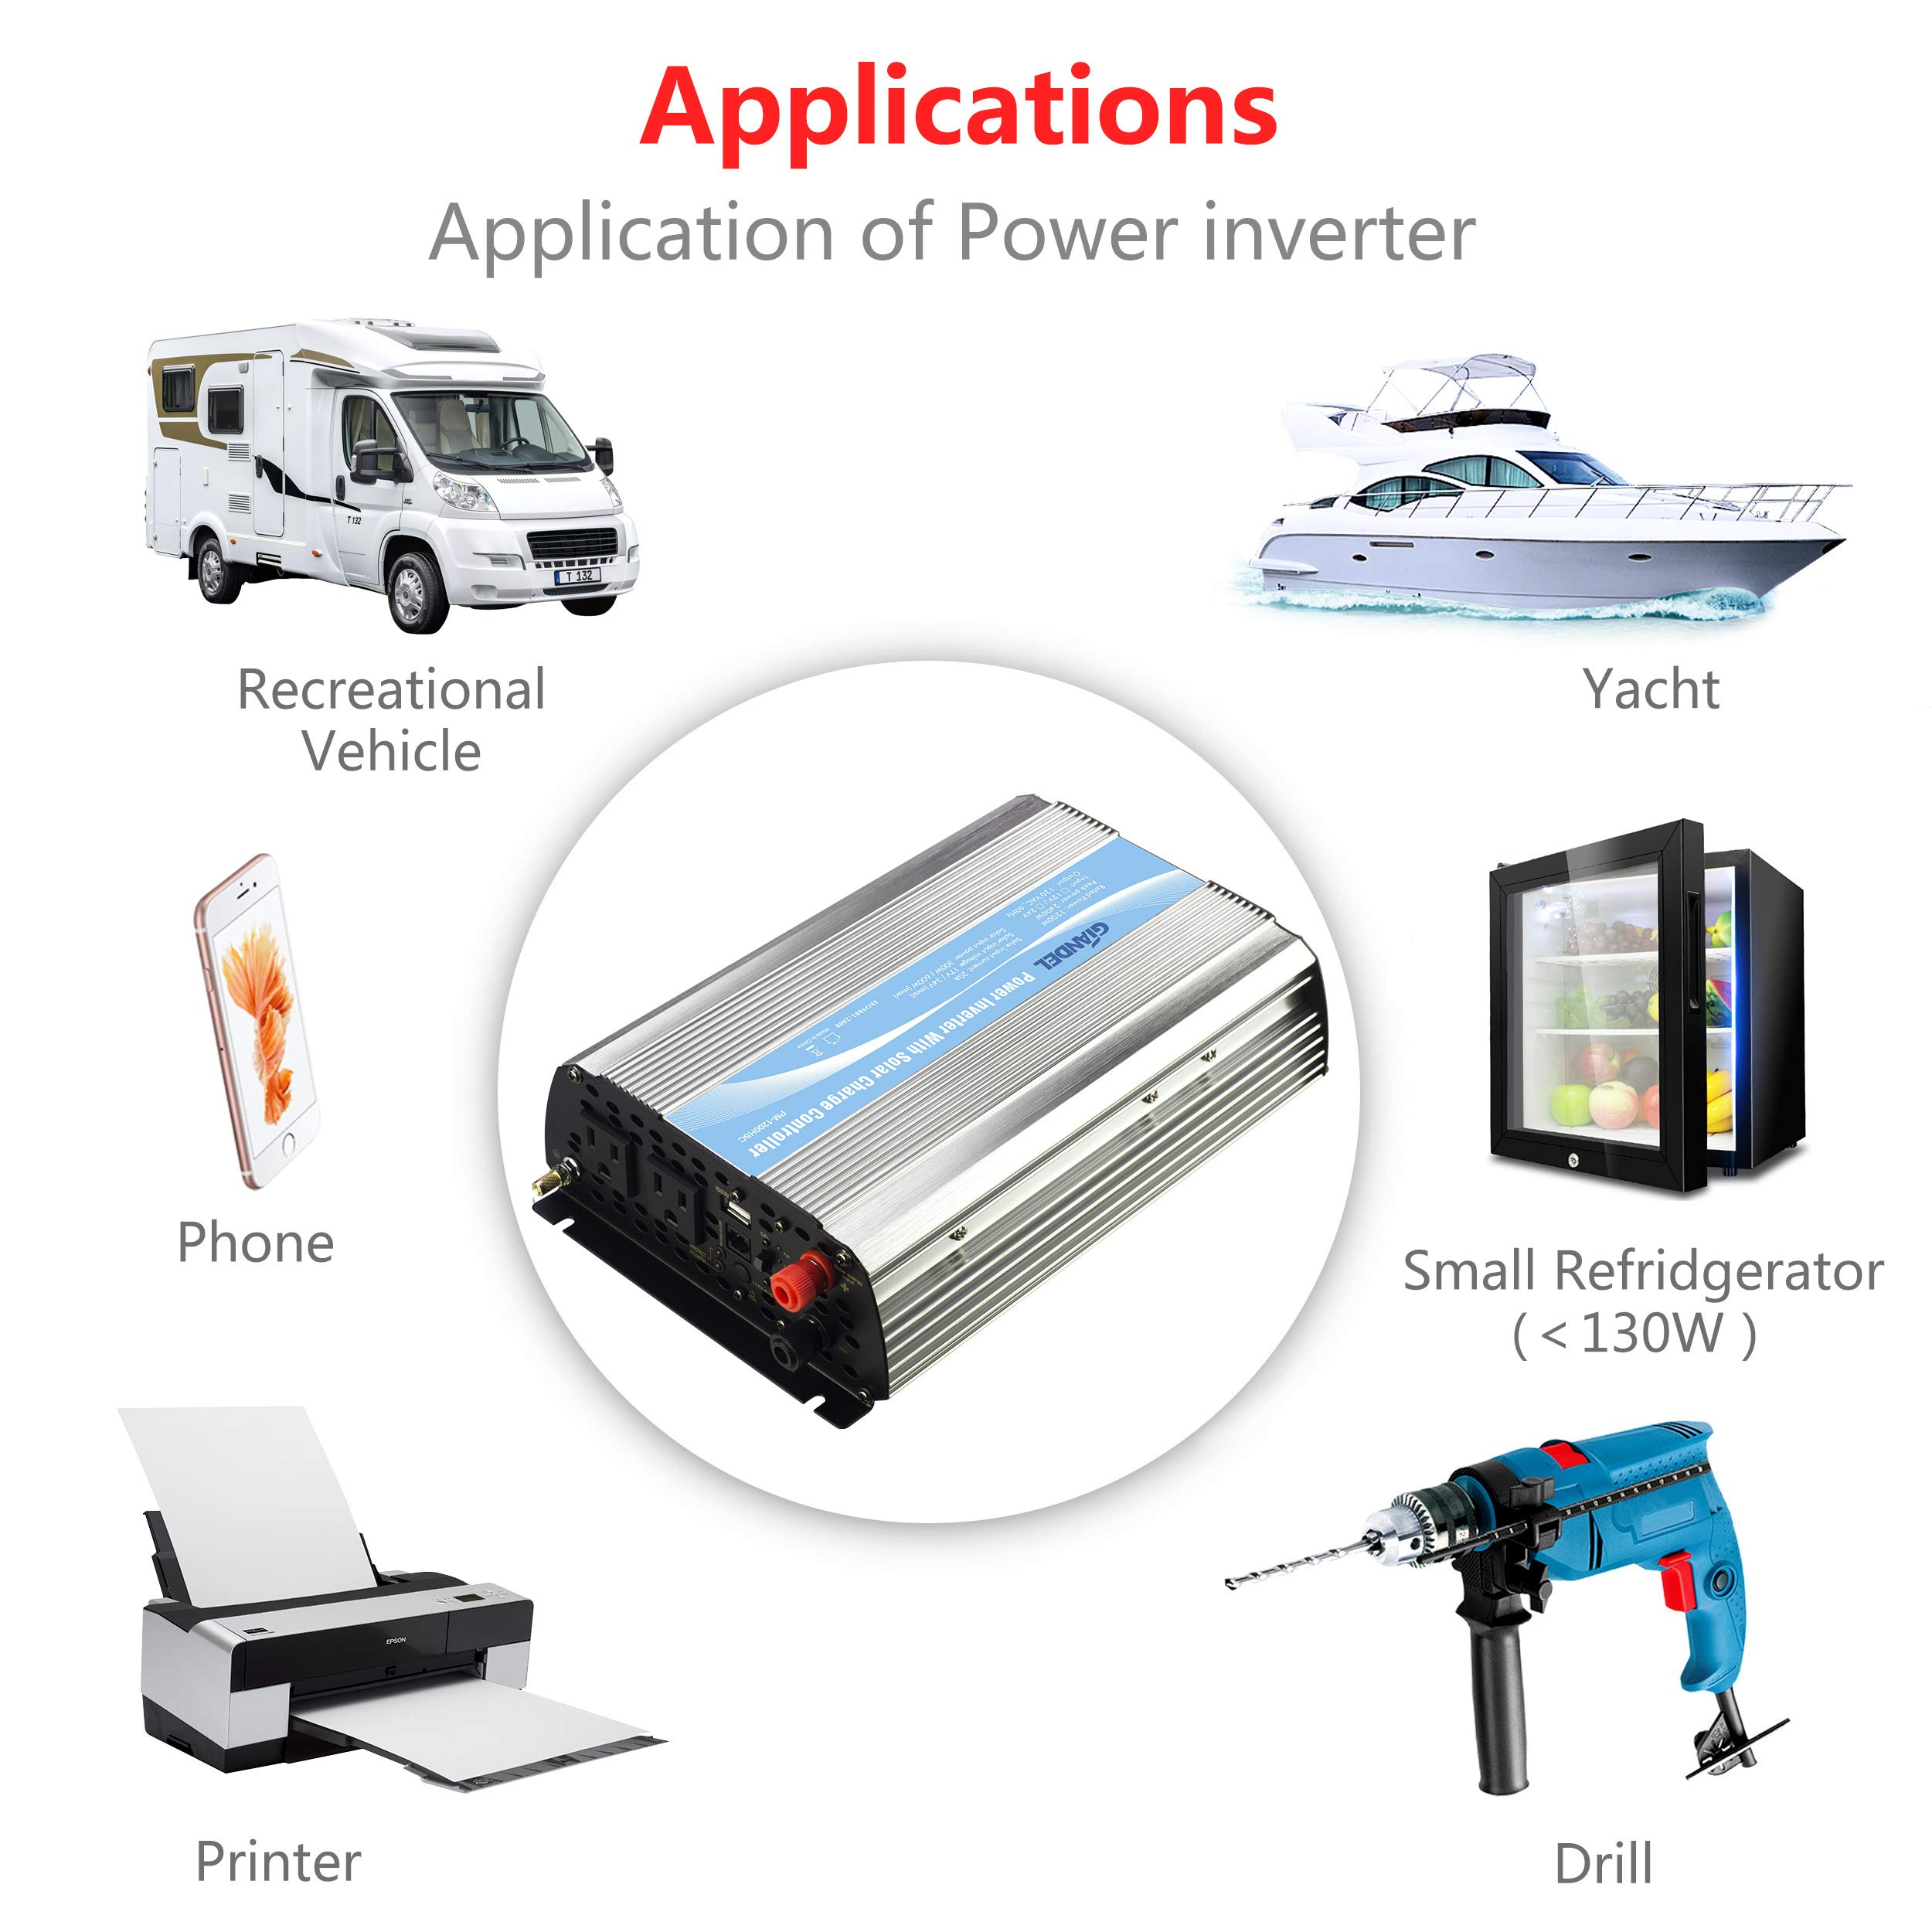 Giandel 1200Watt Power Inverter 12V DC to 110V 120V AC with 20A Solar Charge Controller Remote Control Dual AC Outlets & USB Port for RV Truck Solar System by Giandel (Image #3)